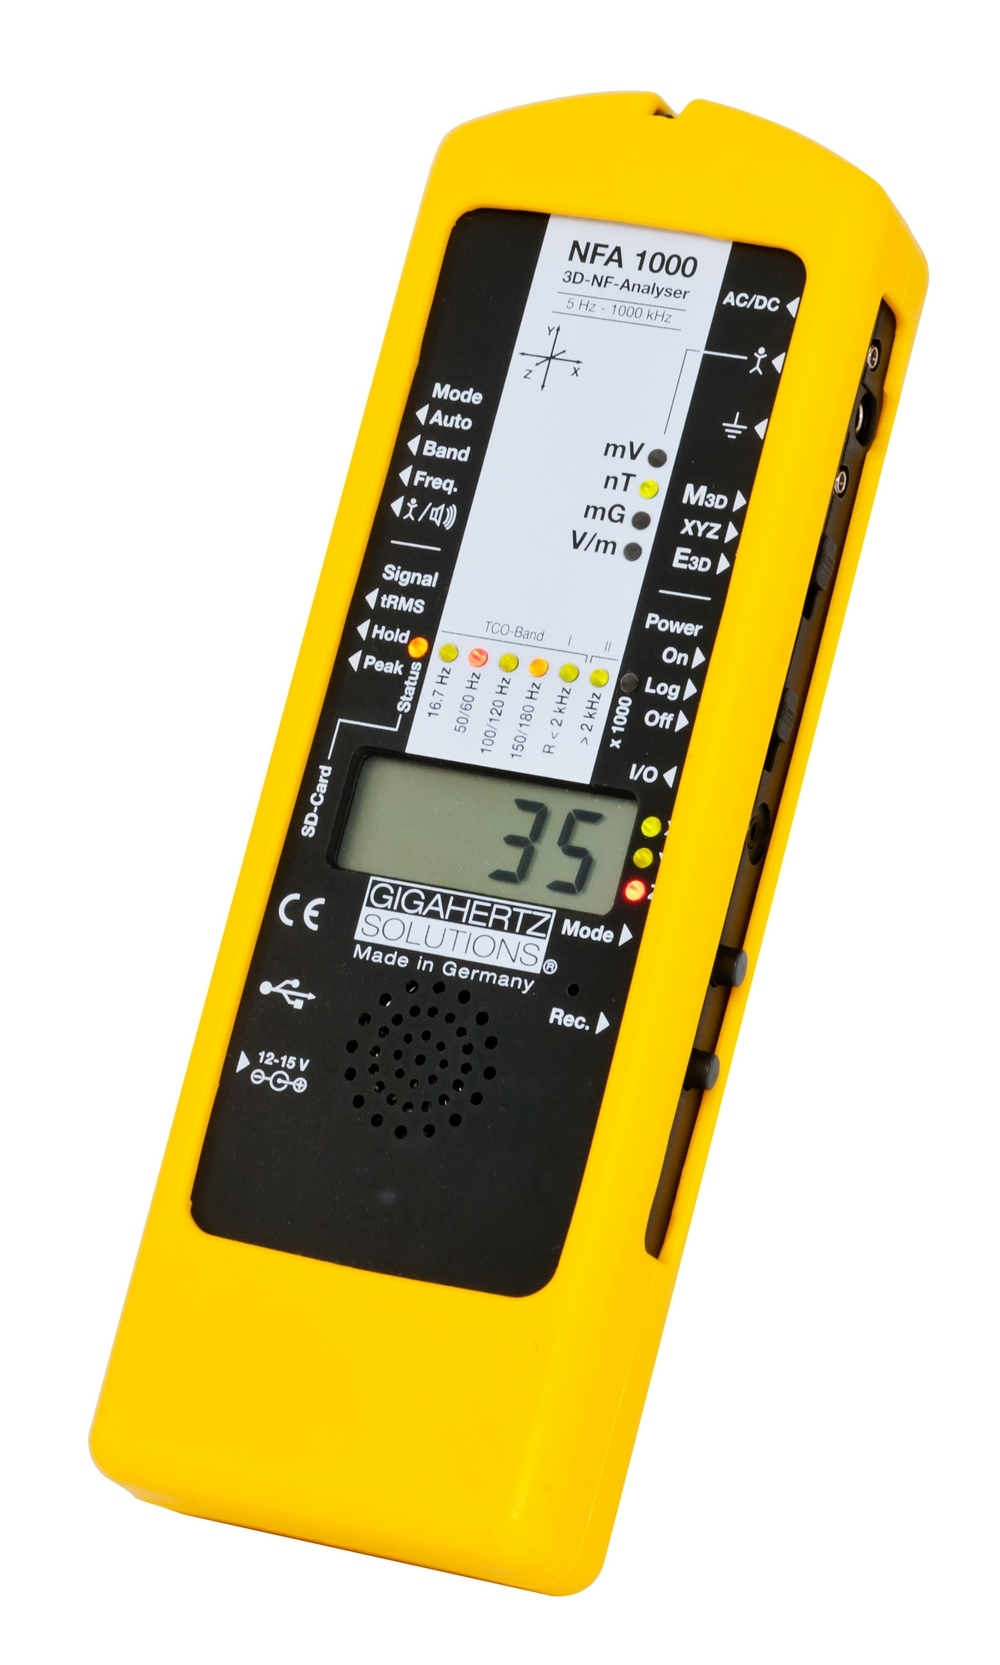 Just one of our professional EMF Analyzers, the Gigahertz Solutions NFA 1000 (Made in Germany) is our latest state-of-the-art certified-calibrated data logging / manually operated instrument for measuring AC magnetic fields (M),potential-free current electric fields (E), and Body Voltage. We are constantly updating our EMF training and equipment to maintain the highest standards of testing for your safety needs.